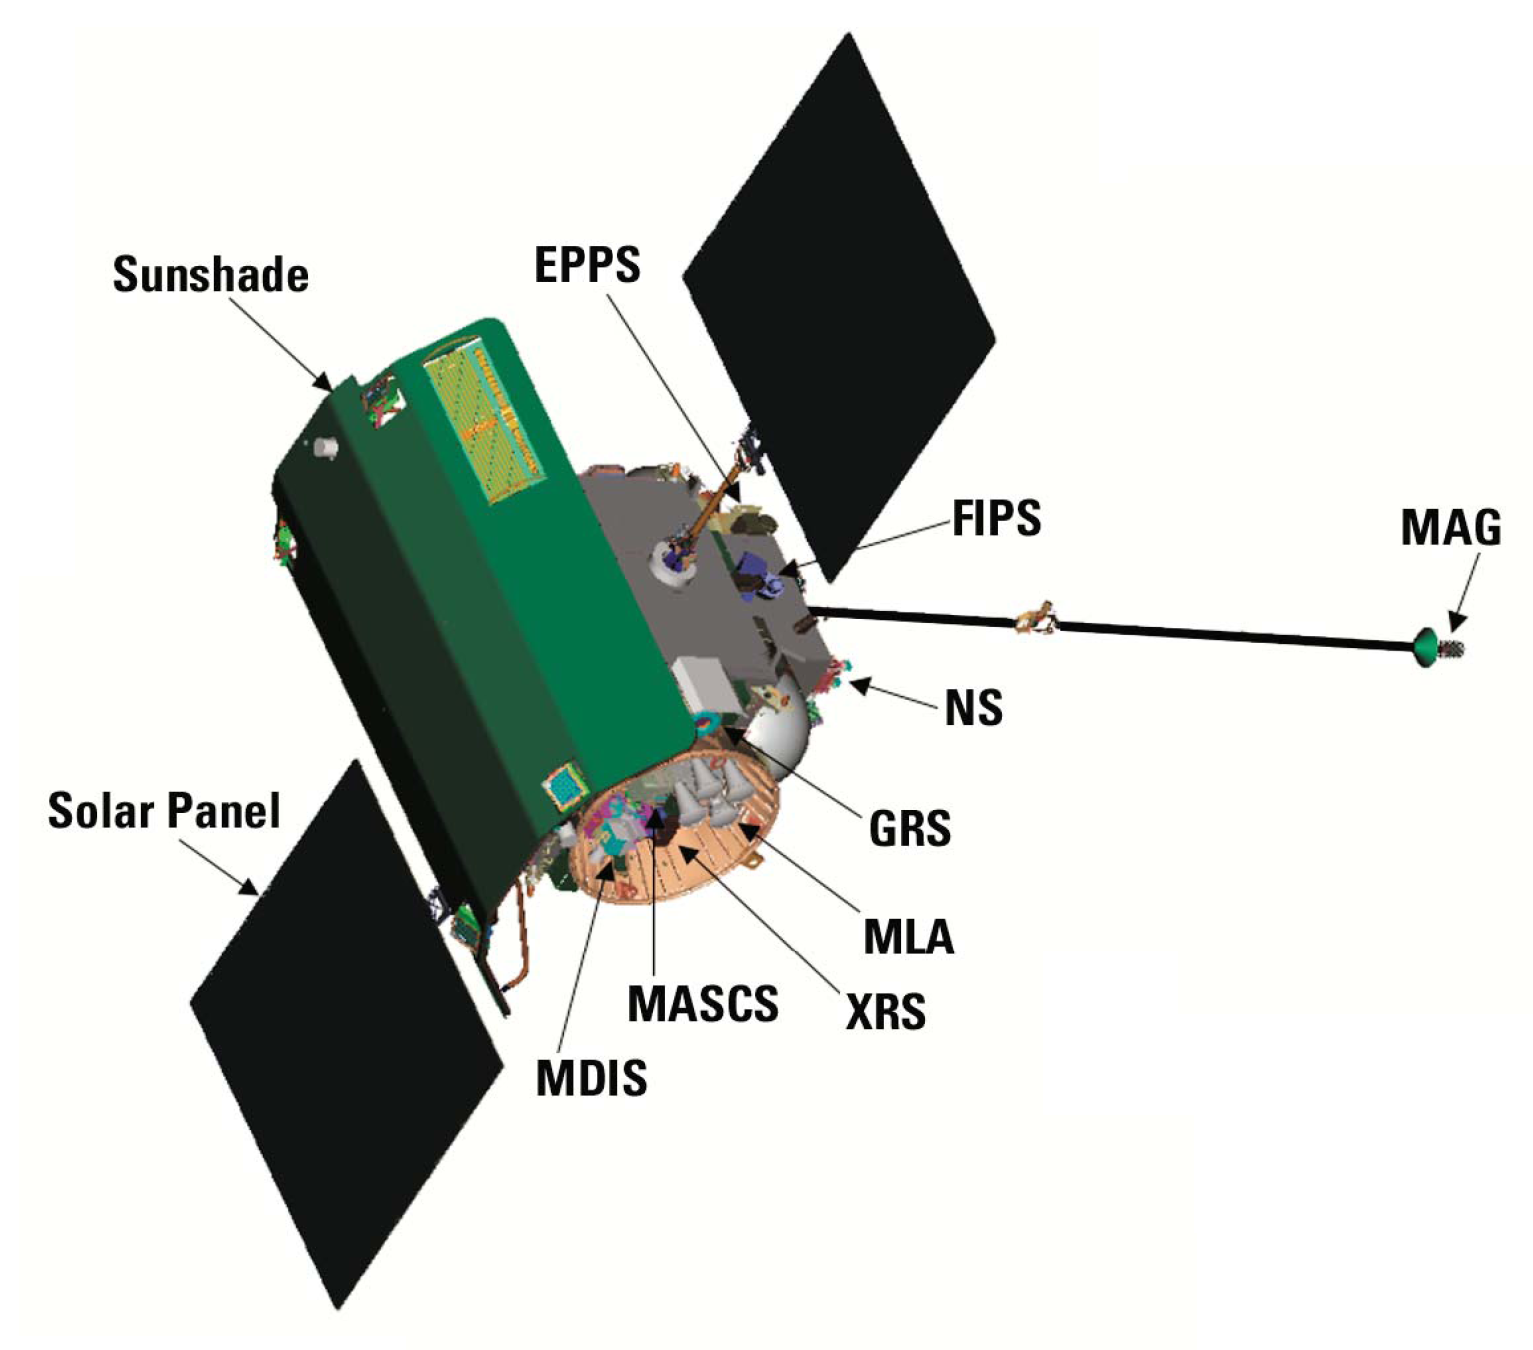 Filemessenger Sonda Wikimedia Commons Labeled Diagram Of The Spacecraft Showing Location Thumbnail For Version As 1230 14 July 2006